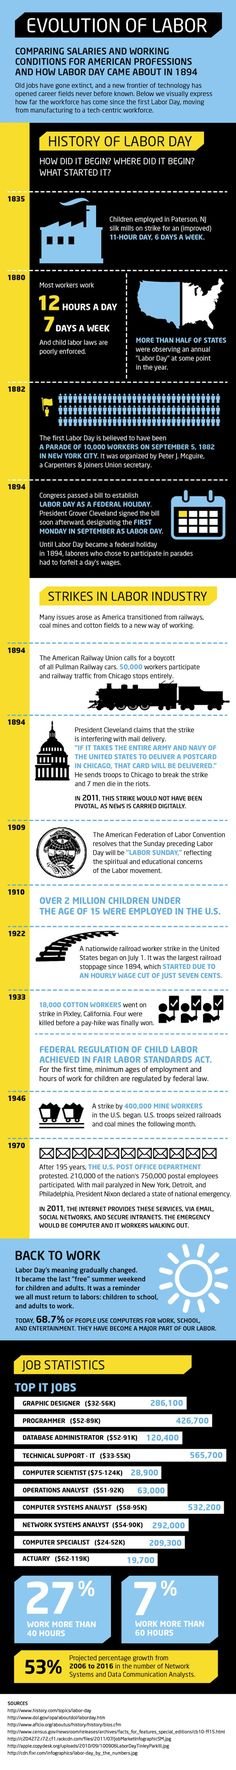 The History of Labor Day - how and where it all began.